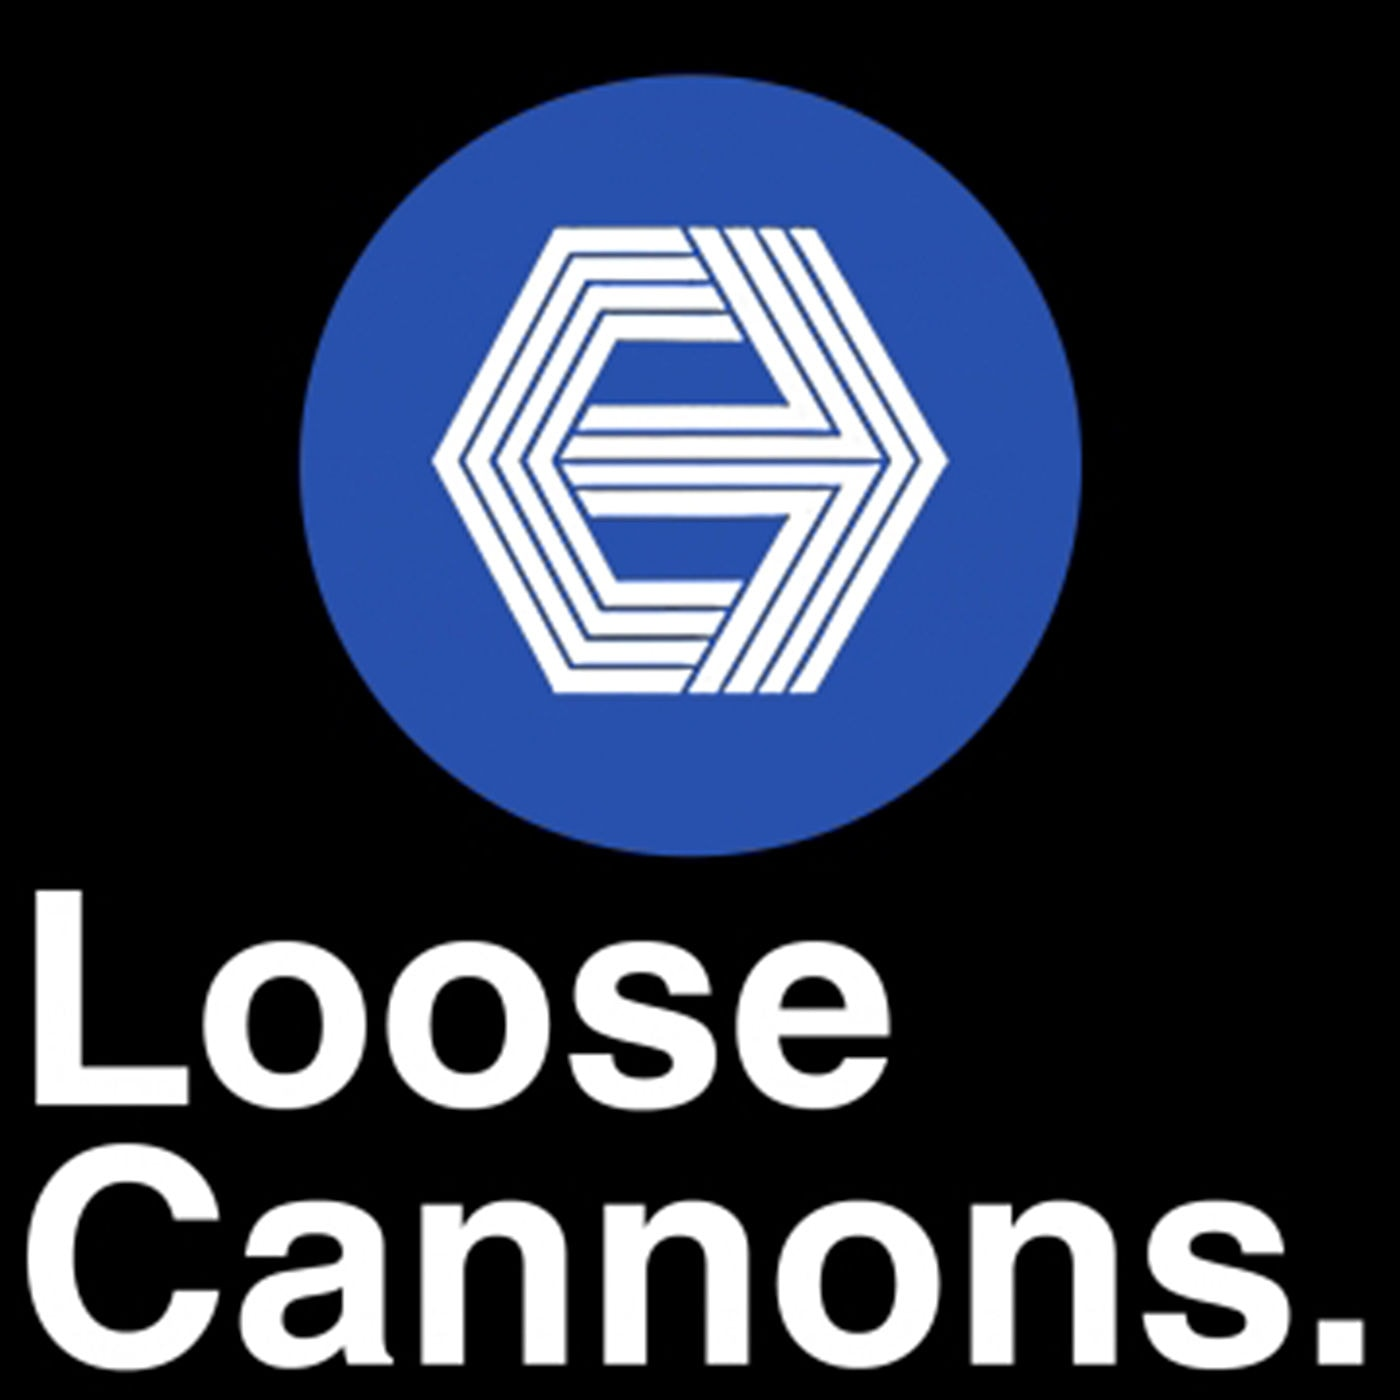 The Loose Cannons Podcast